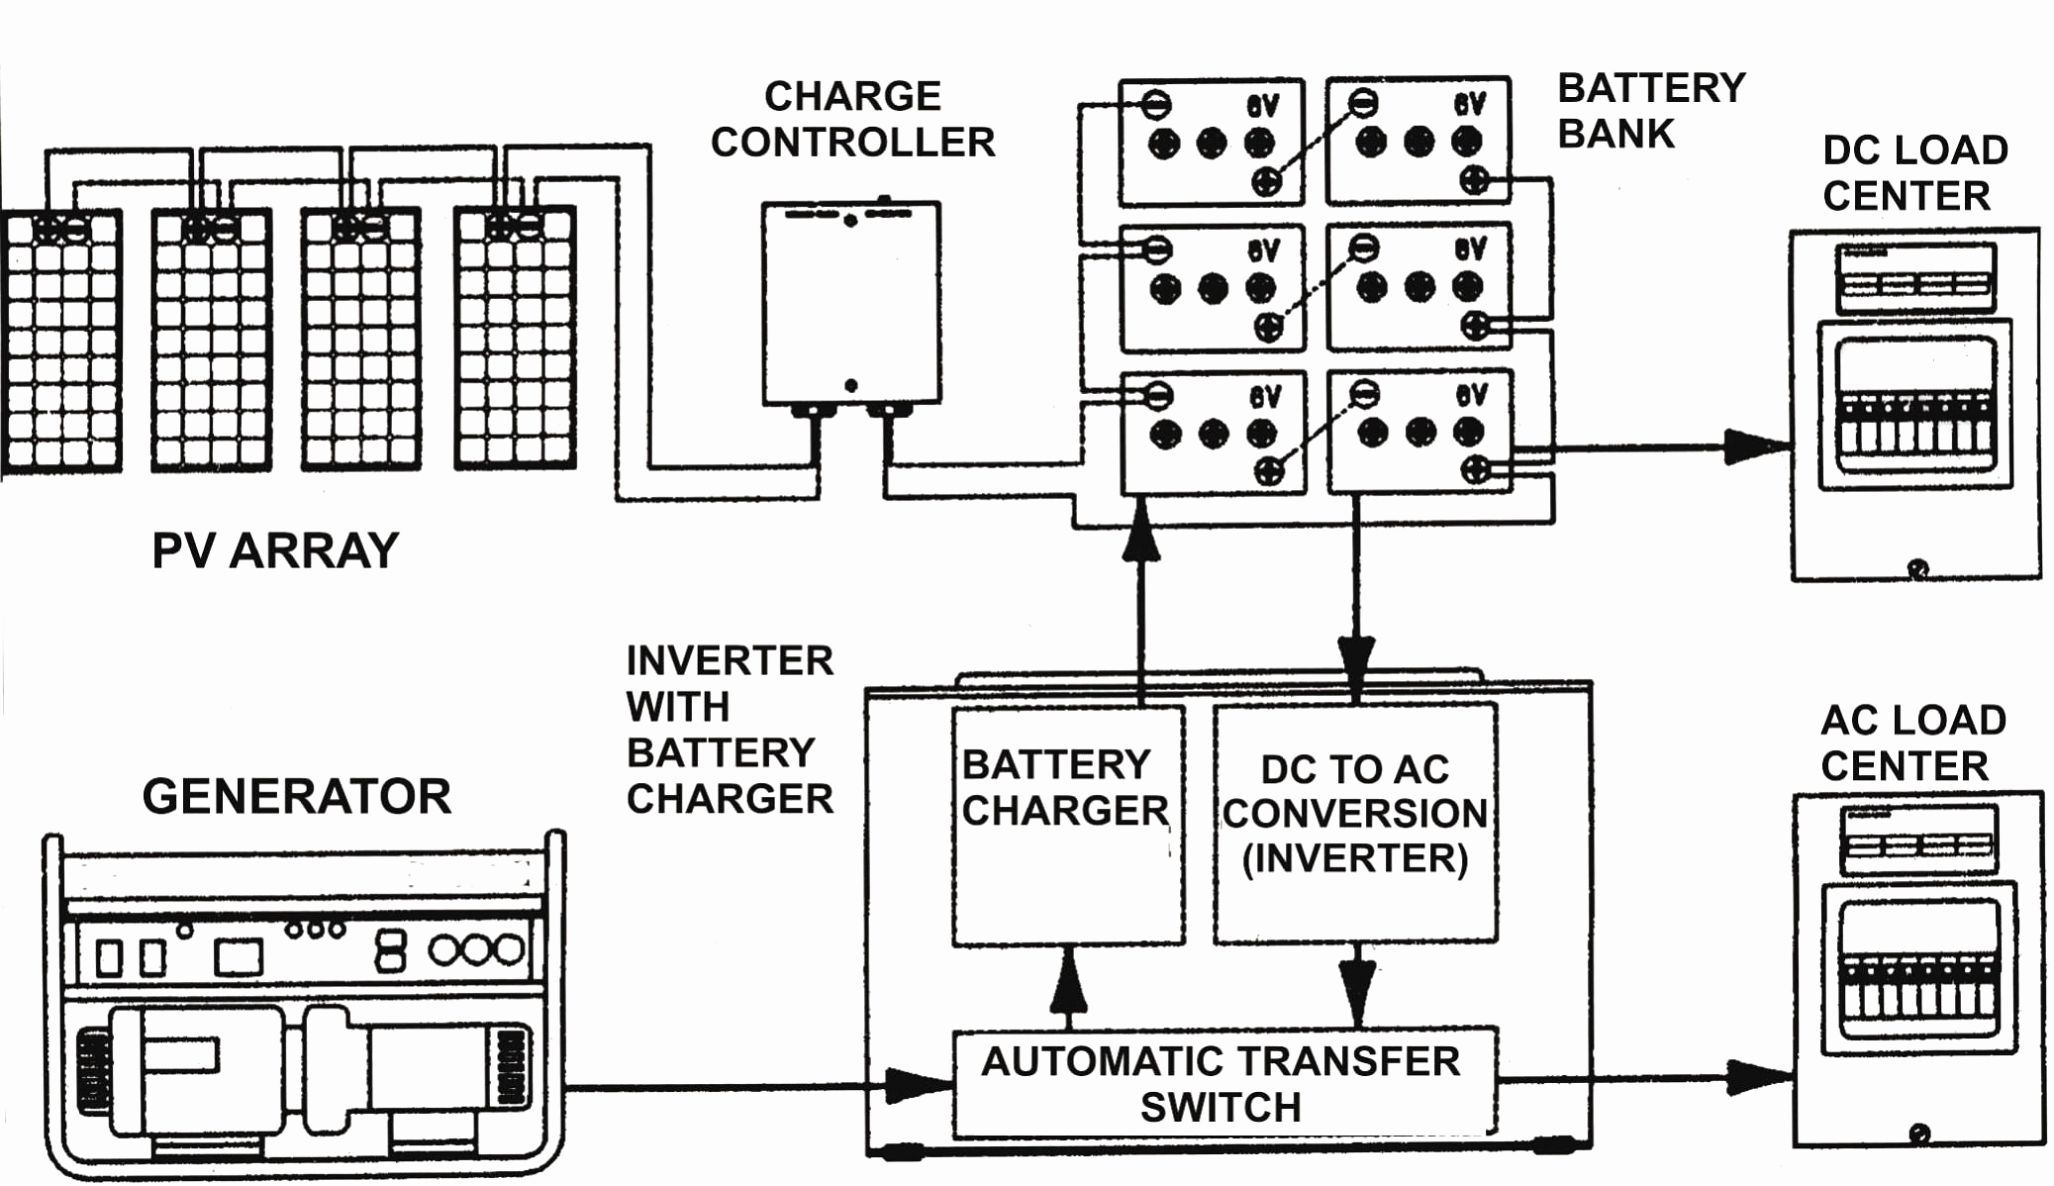 Rv Inverter Charger Wiring Diagram Manual Guide